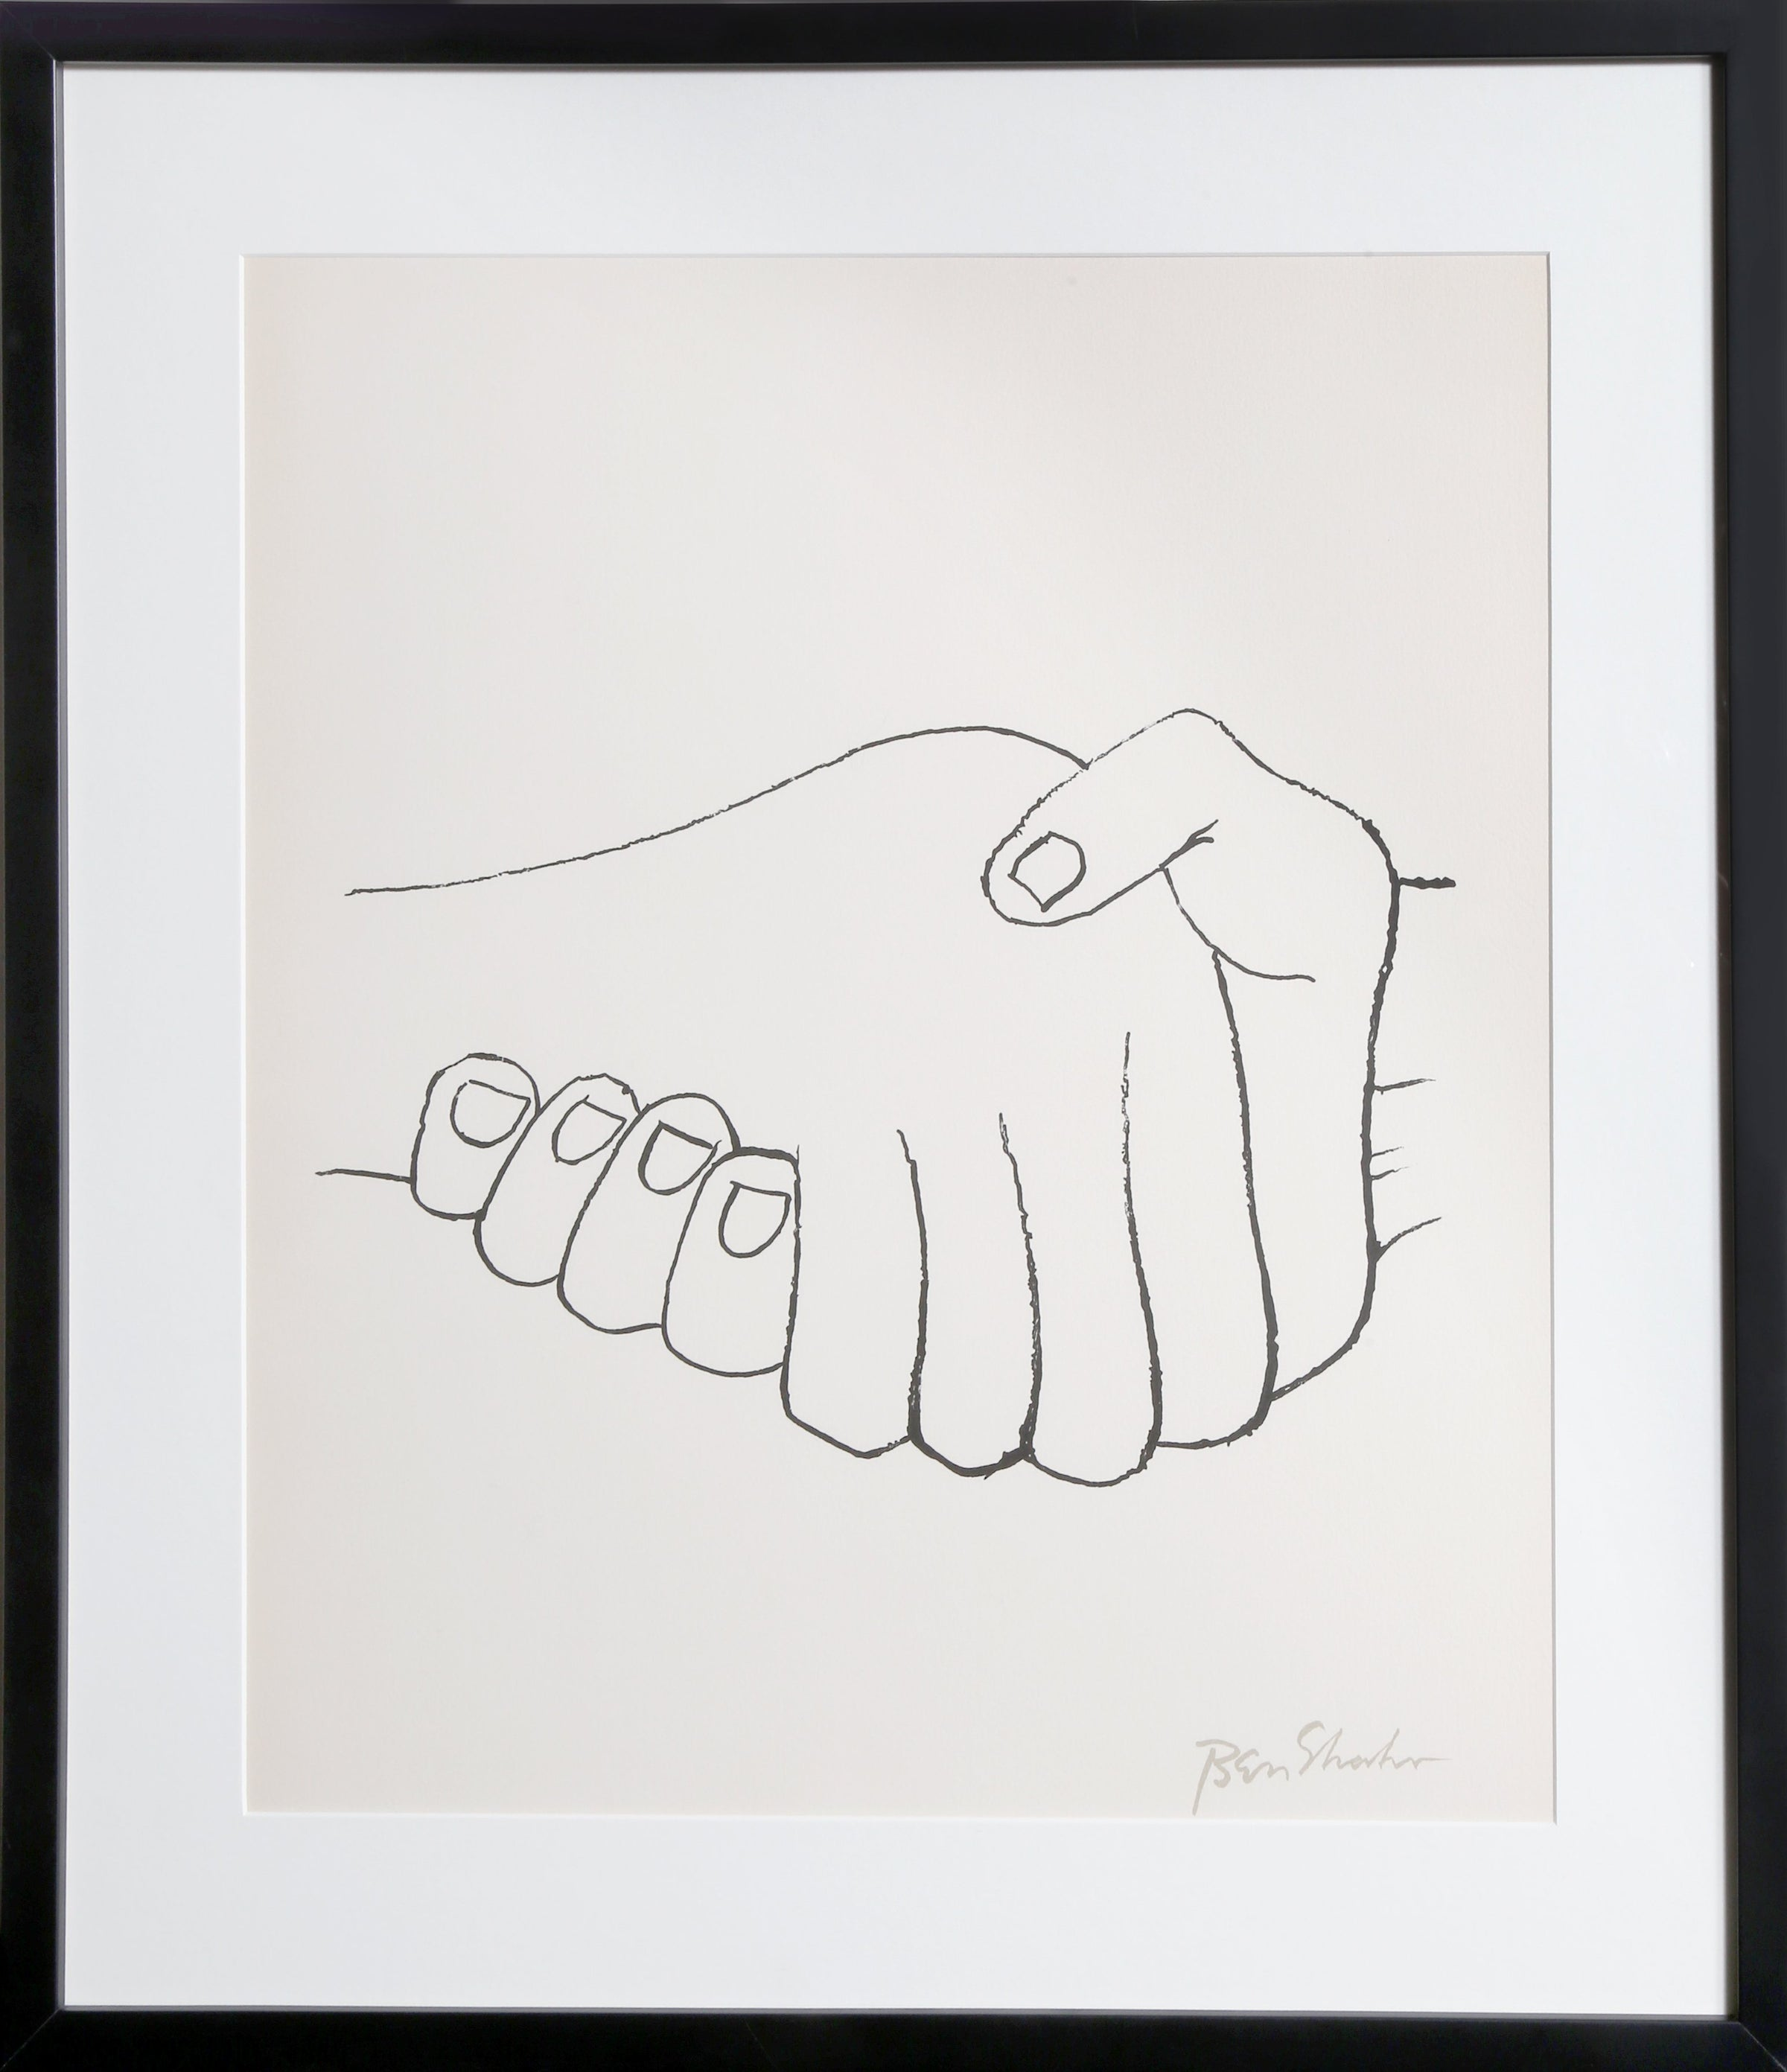 Ben Shahn, Unexpected Meetings from the Rilke Portfolio Lithograph - RoGallery